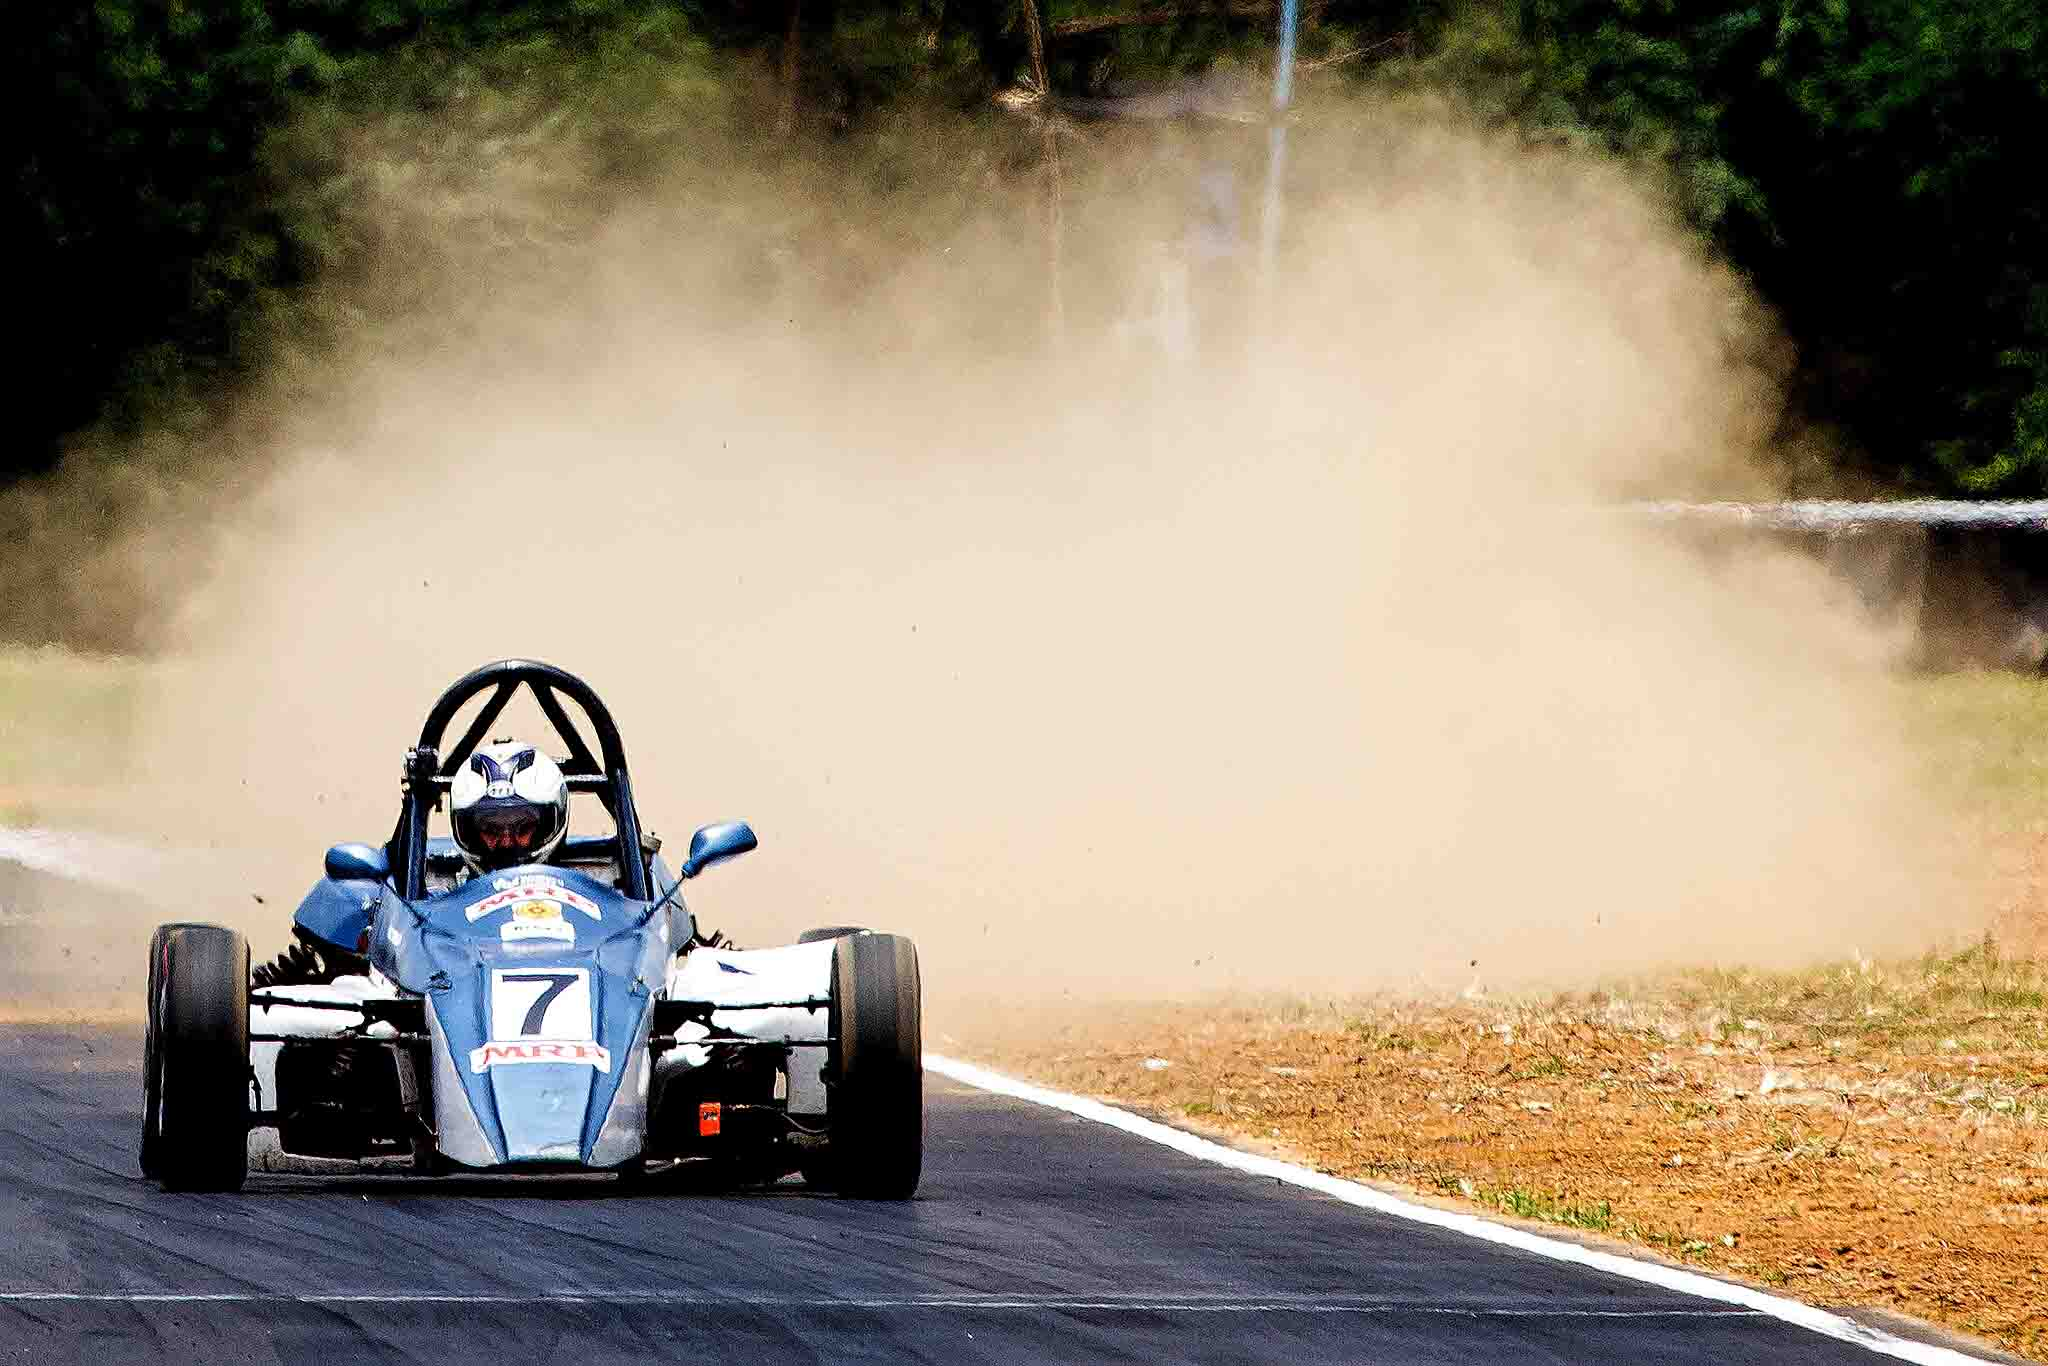 Catch the First Formula racer from Assam